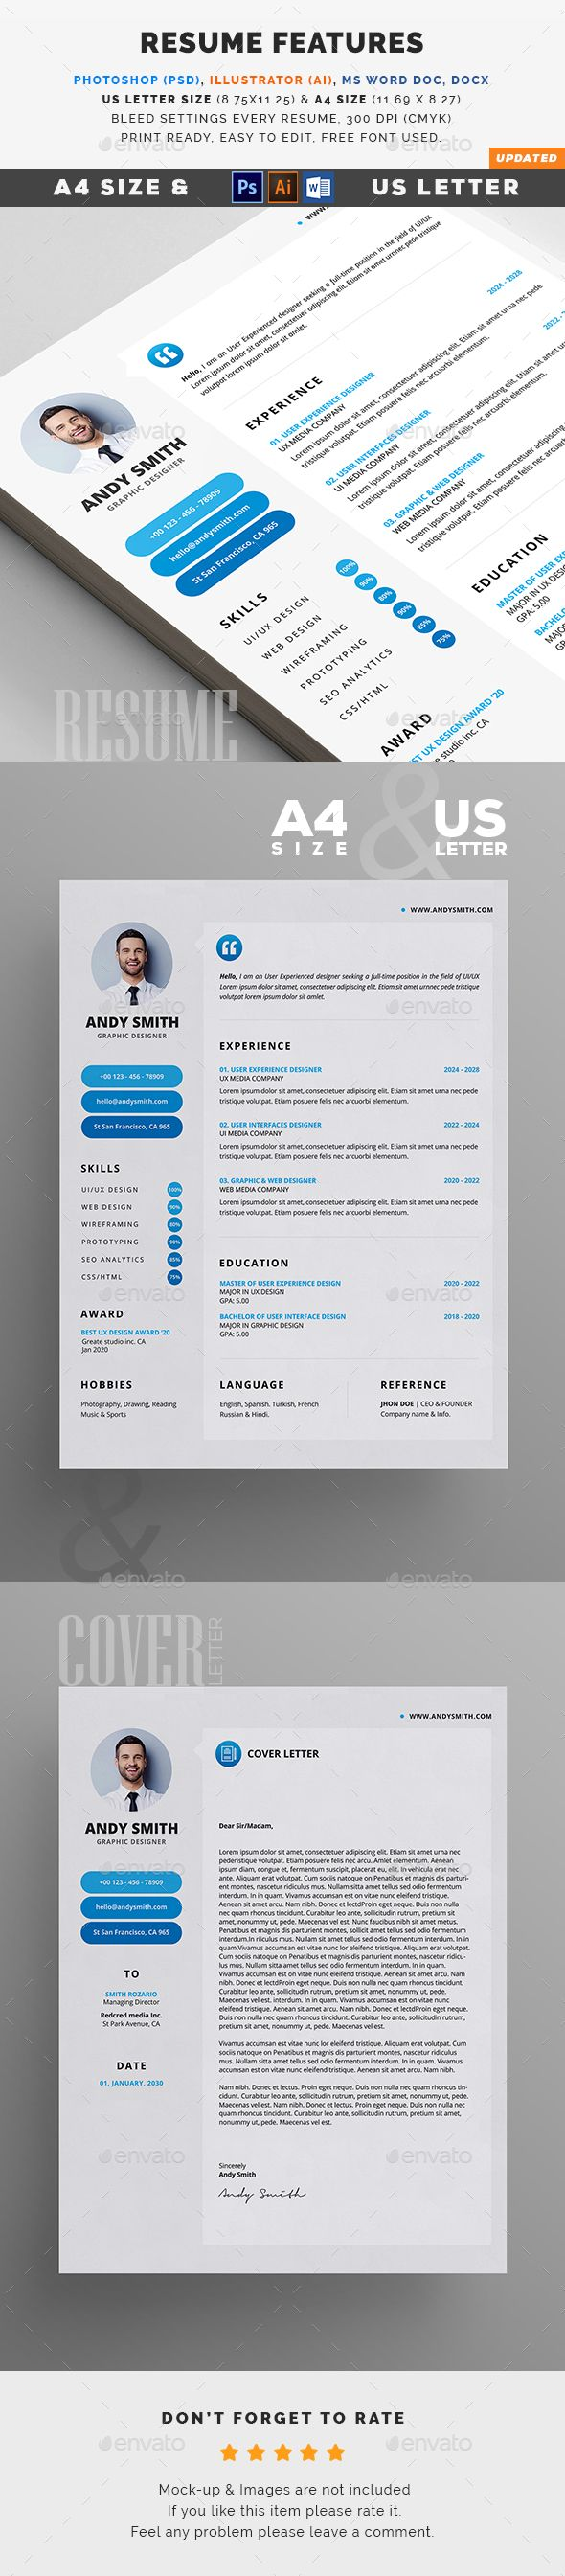 resume letter size a4 and filing